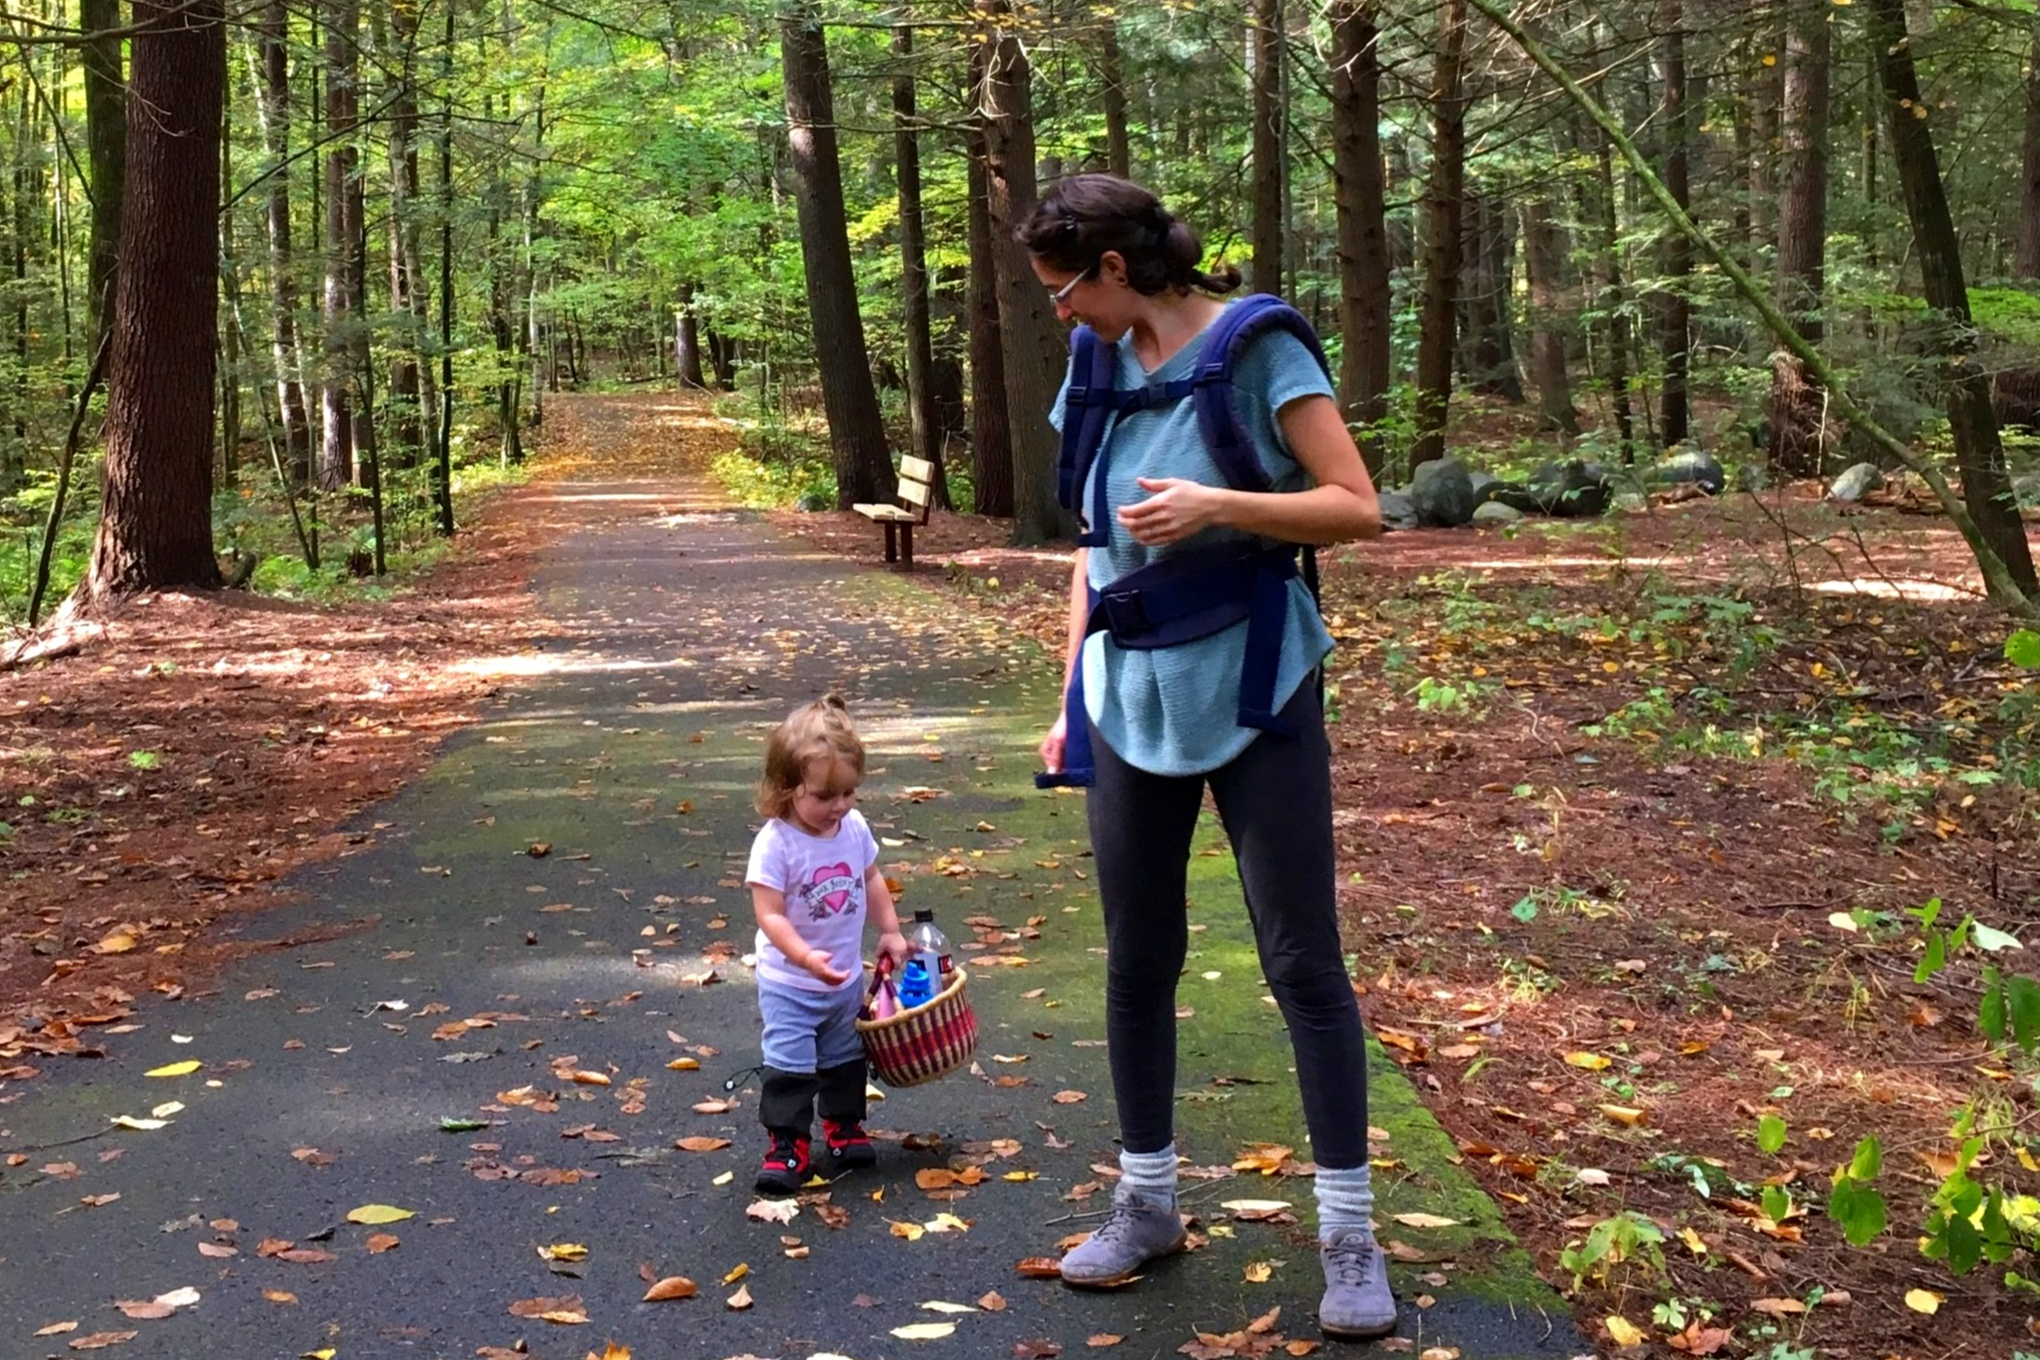 Stephanie and her daughter Juniper foraging for mushrooms in Northampton, MA. Photo credit: Gracie Janove